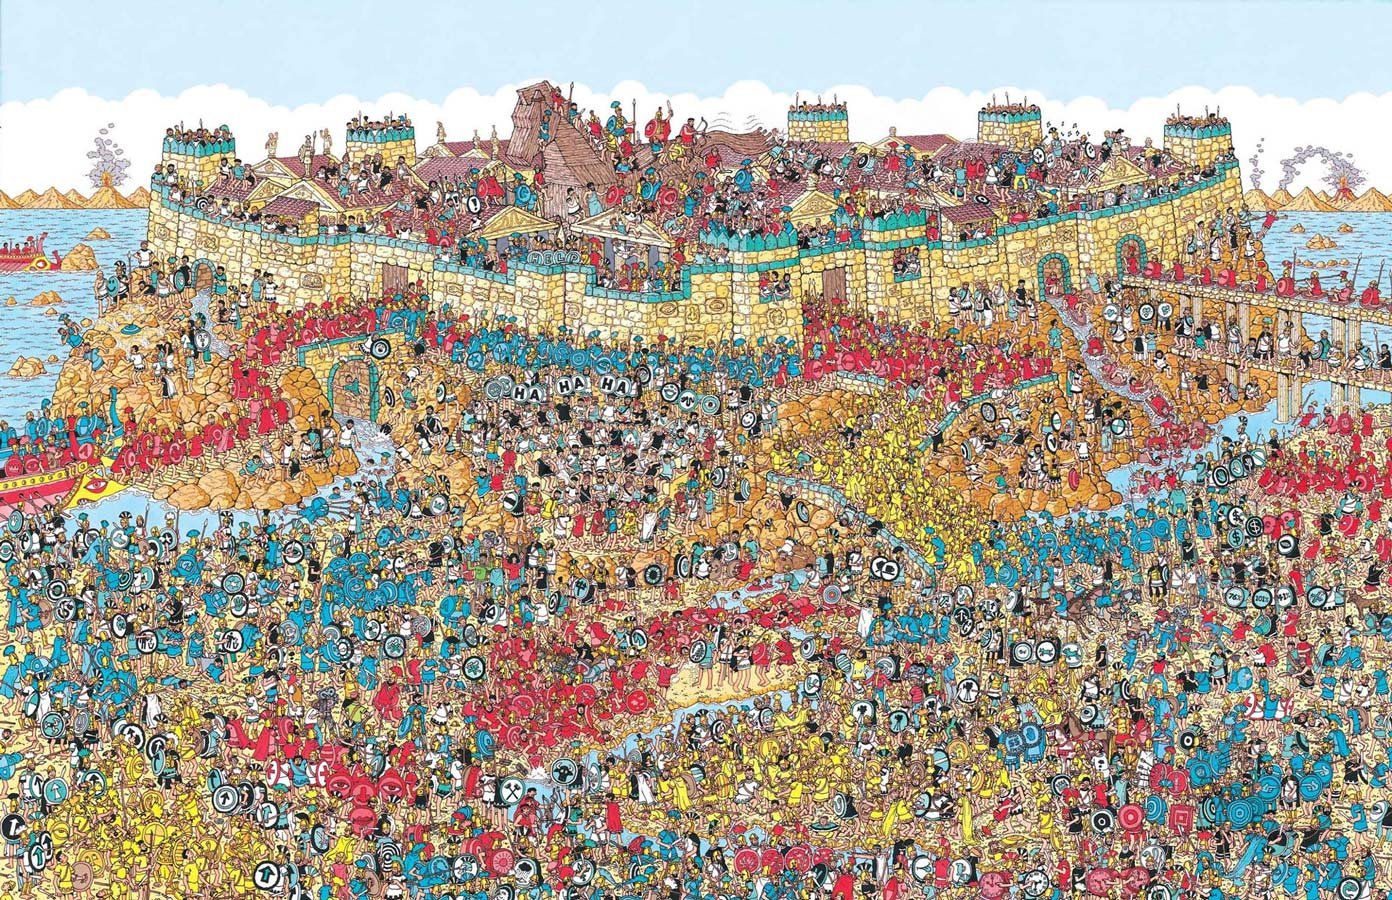 Page from Where is Waldo